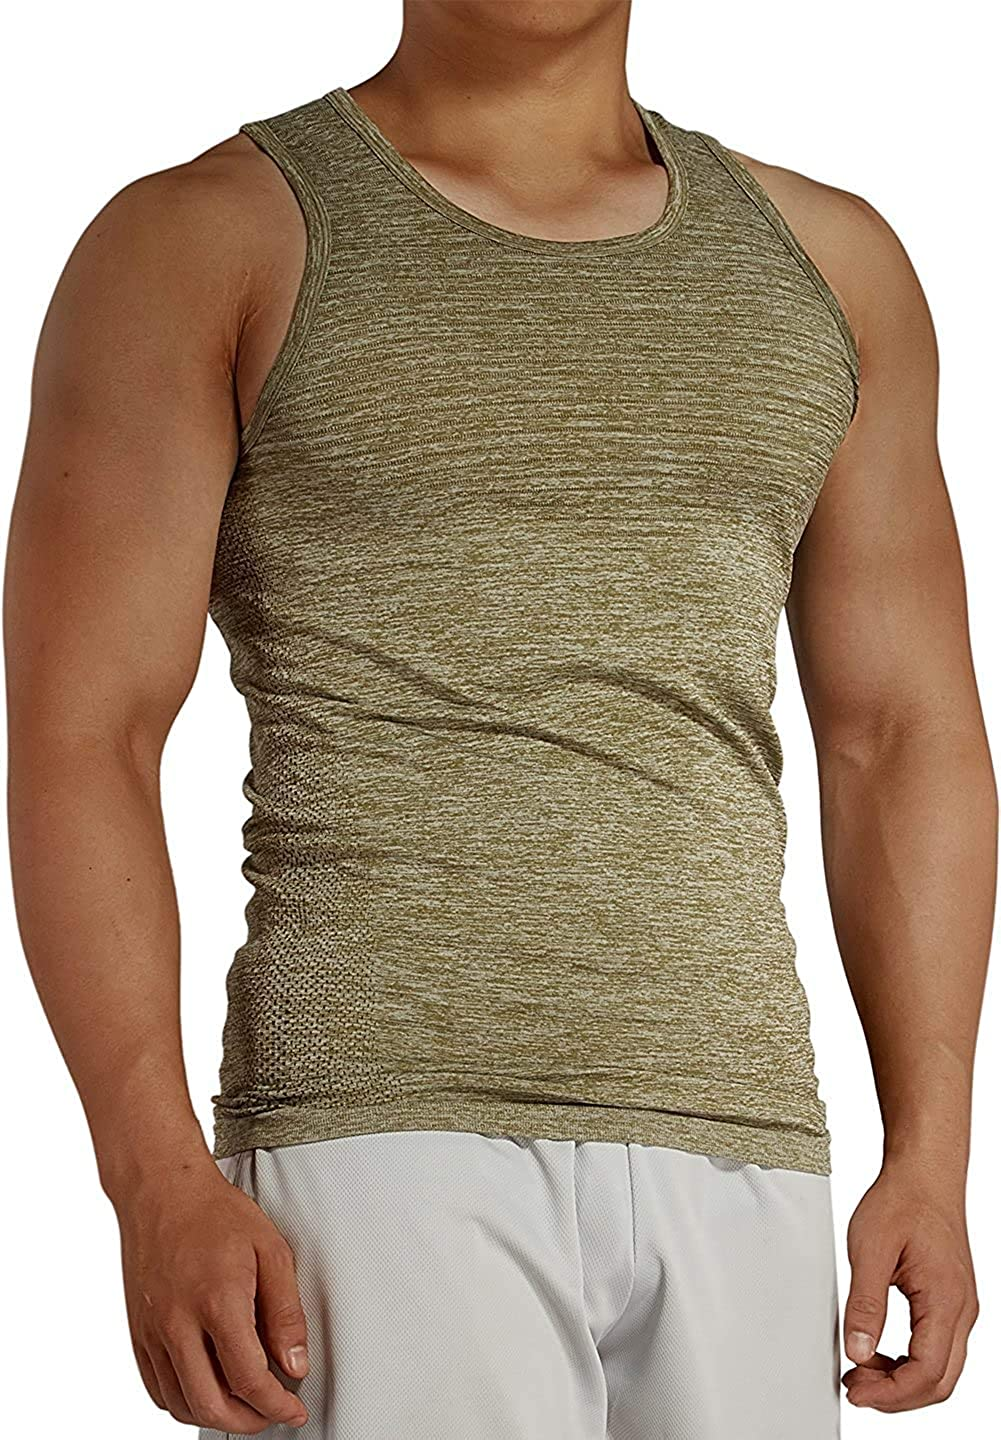 Komprexx New Shipping Free Tank Top 2021 spring and summer new Men Gym - Shirt Stretchy Sleeveless FIT Slim